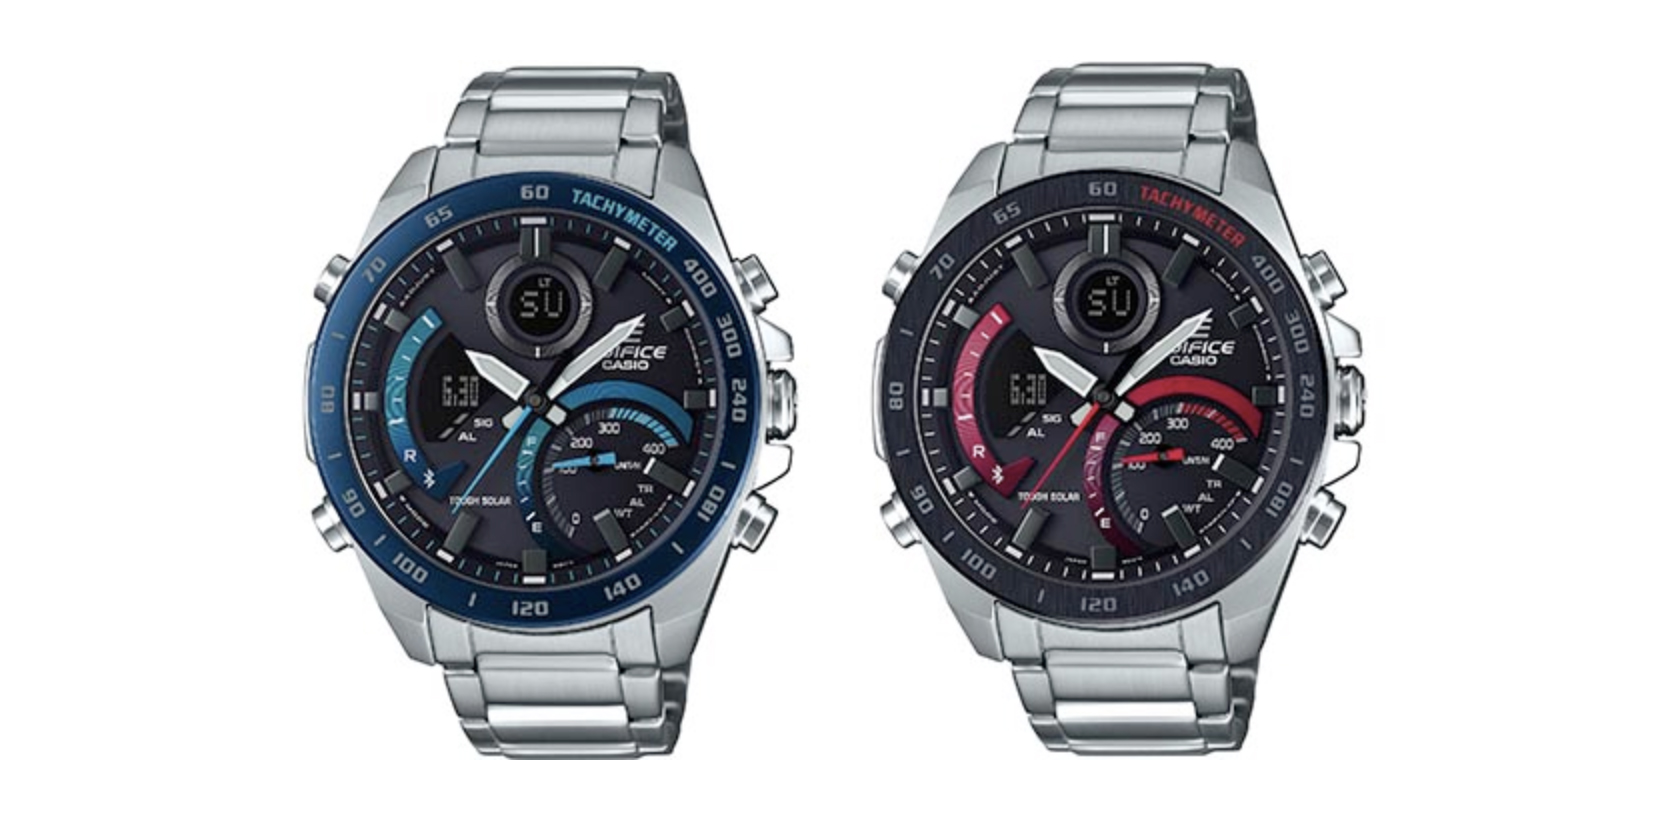 Casio unveils latest smart timepiece with classic design, solar power